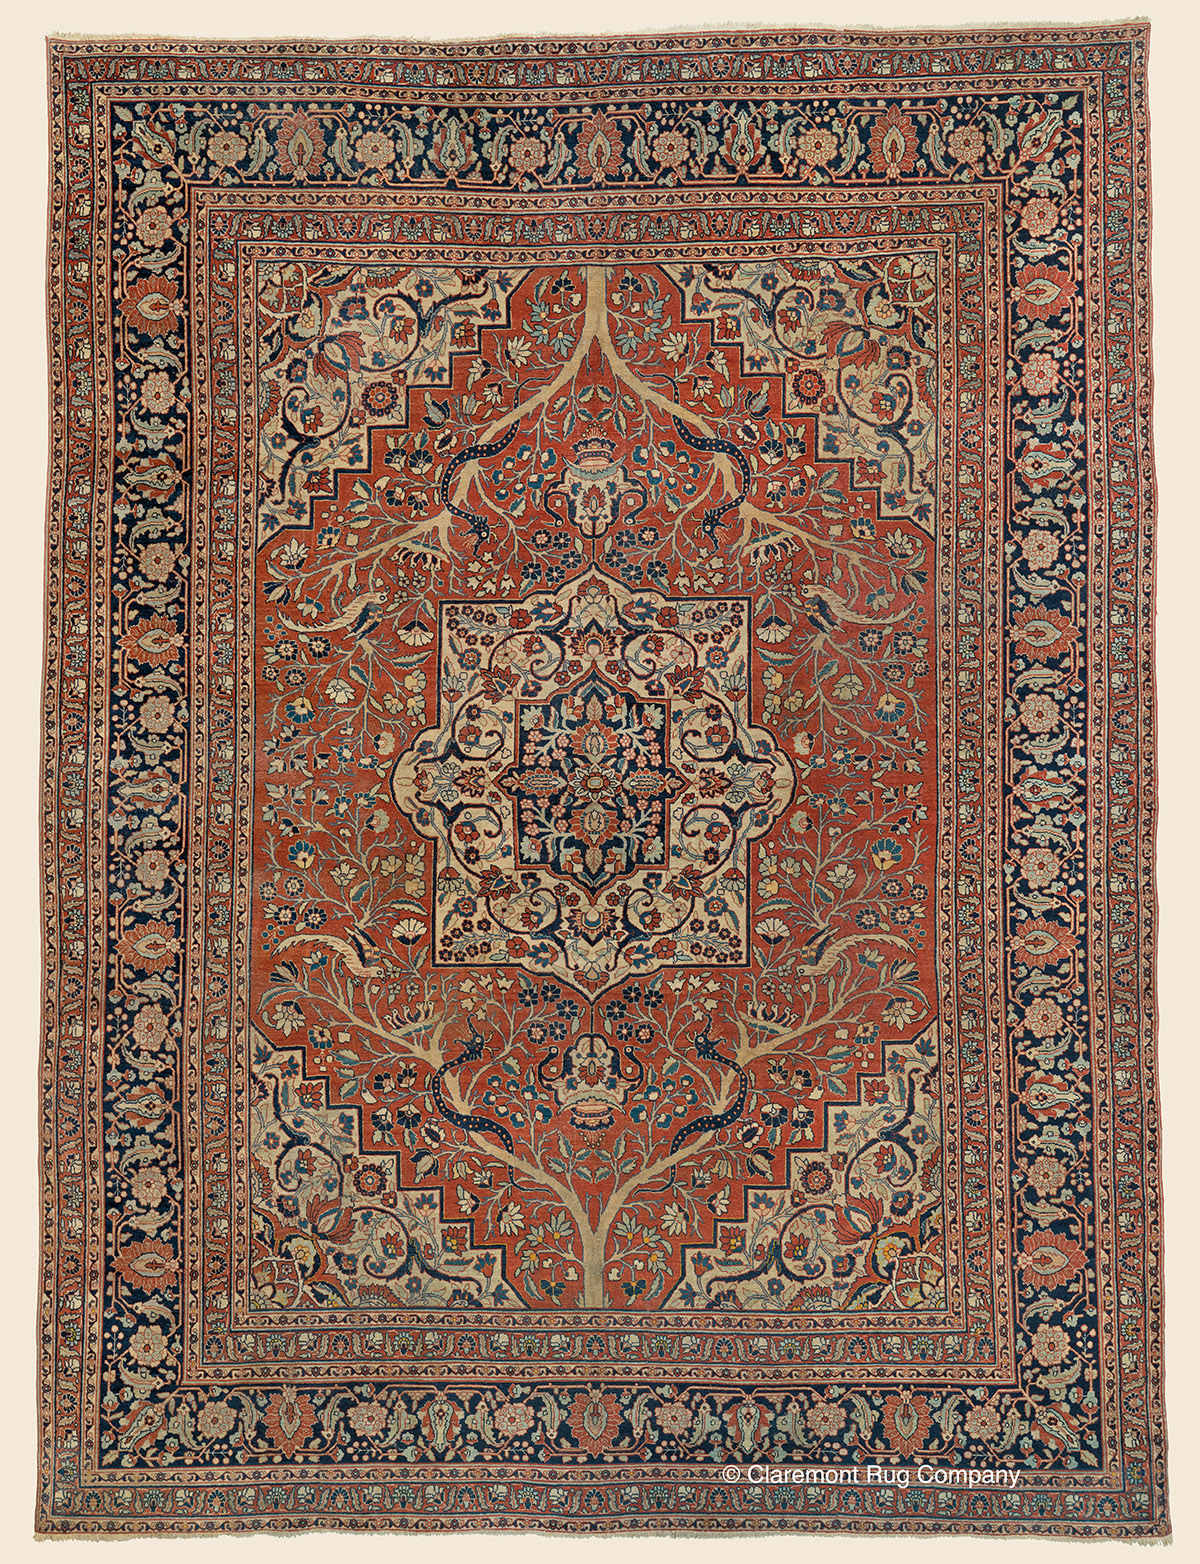 19th century Persian Tabriz Room size carpet with allover floral design of floral sprays and vinery